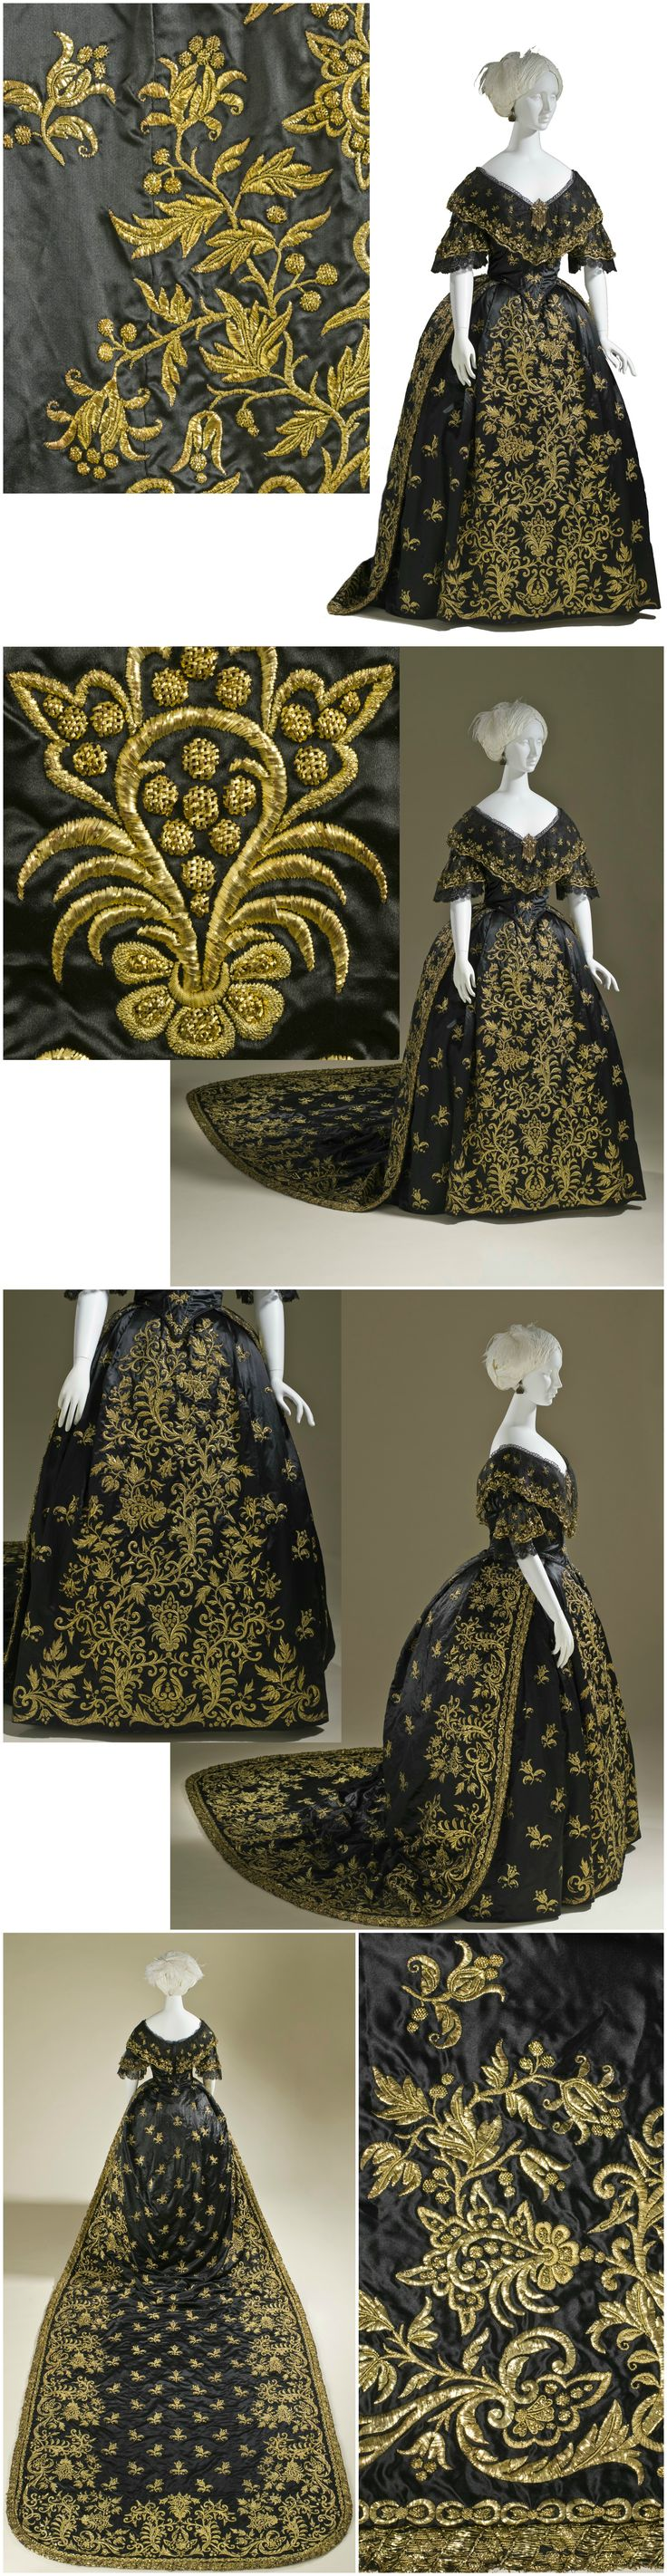 Woman's Dress and Train, Portugal, c. 1845. Silk satin with metallic-thread embroidery and silk net (tulle) trim. Said to have been worn by Queen Maria II of Portugal (reigned 1826-53) in 1850. Collection of the Los Angeles County Museum of Art (LACMA). CLICK FOR VERY LARGE, HI-RES  IMAGES.